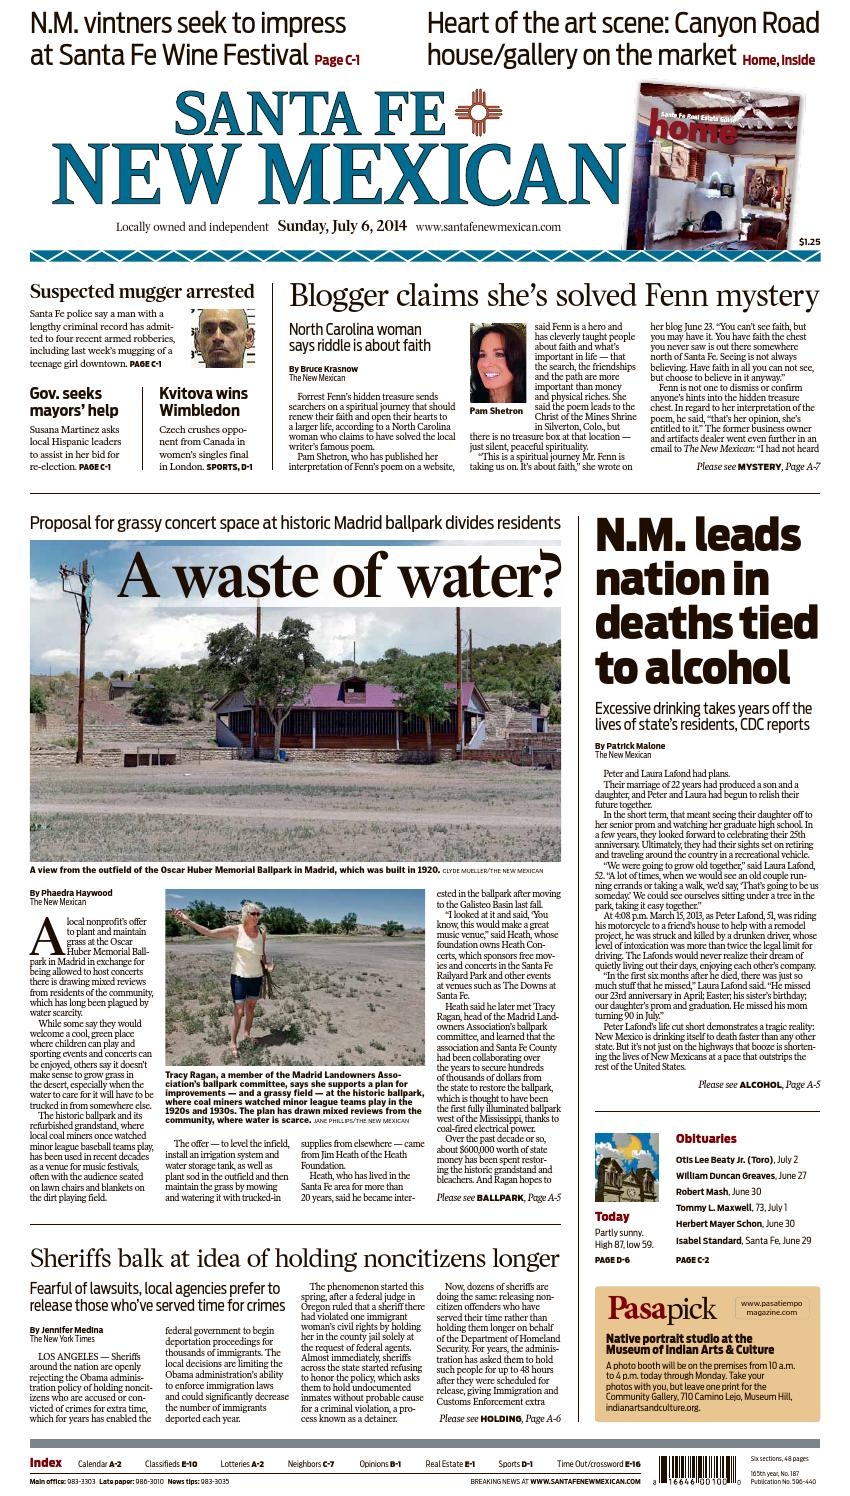 Santa Fe New Mexican, July 6, 2014 by The New Mexican - issuu